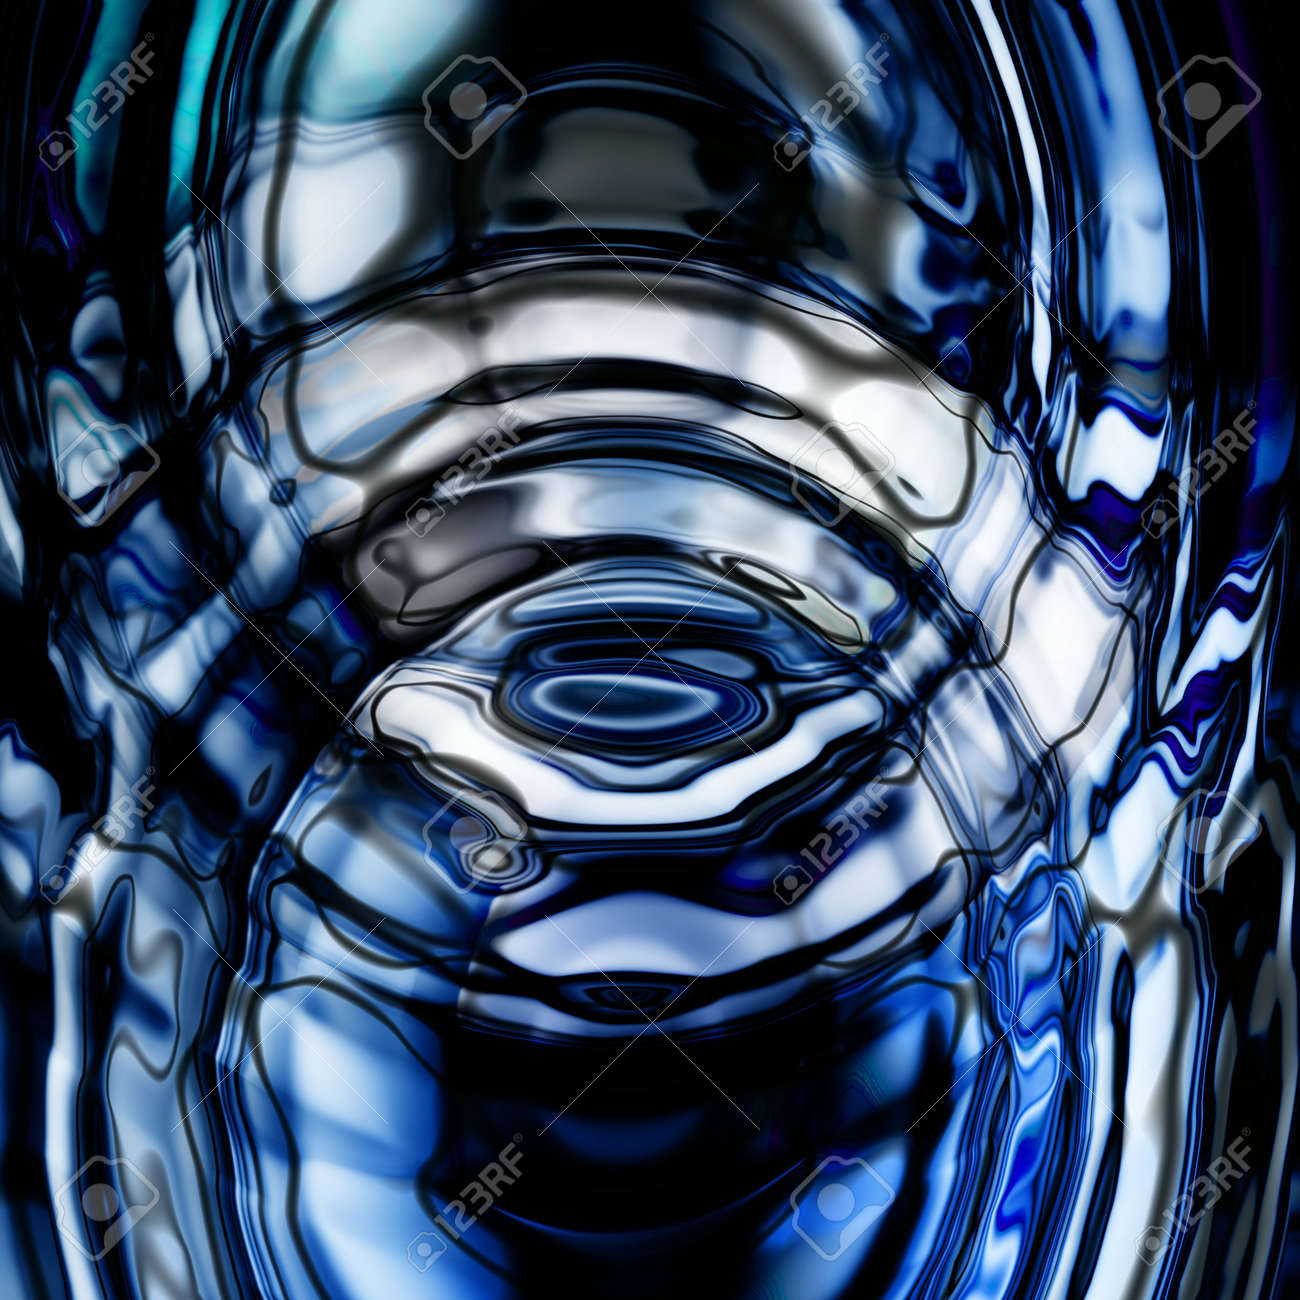 Concentric Blue Ripples in a calm pool of water - 532963